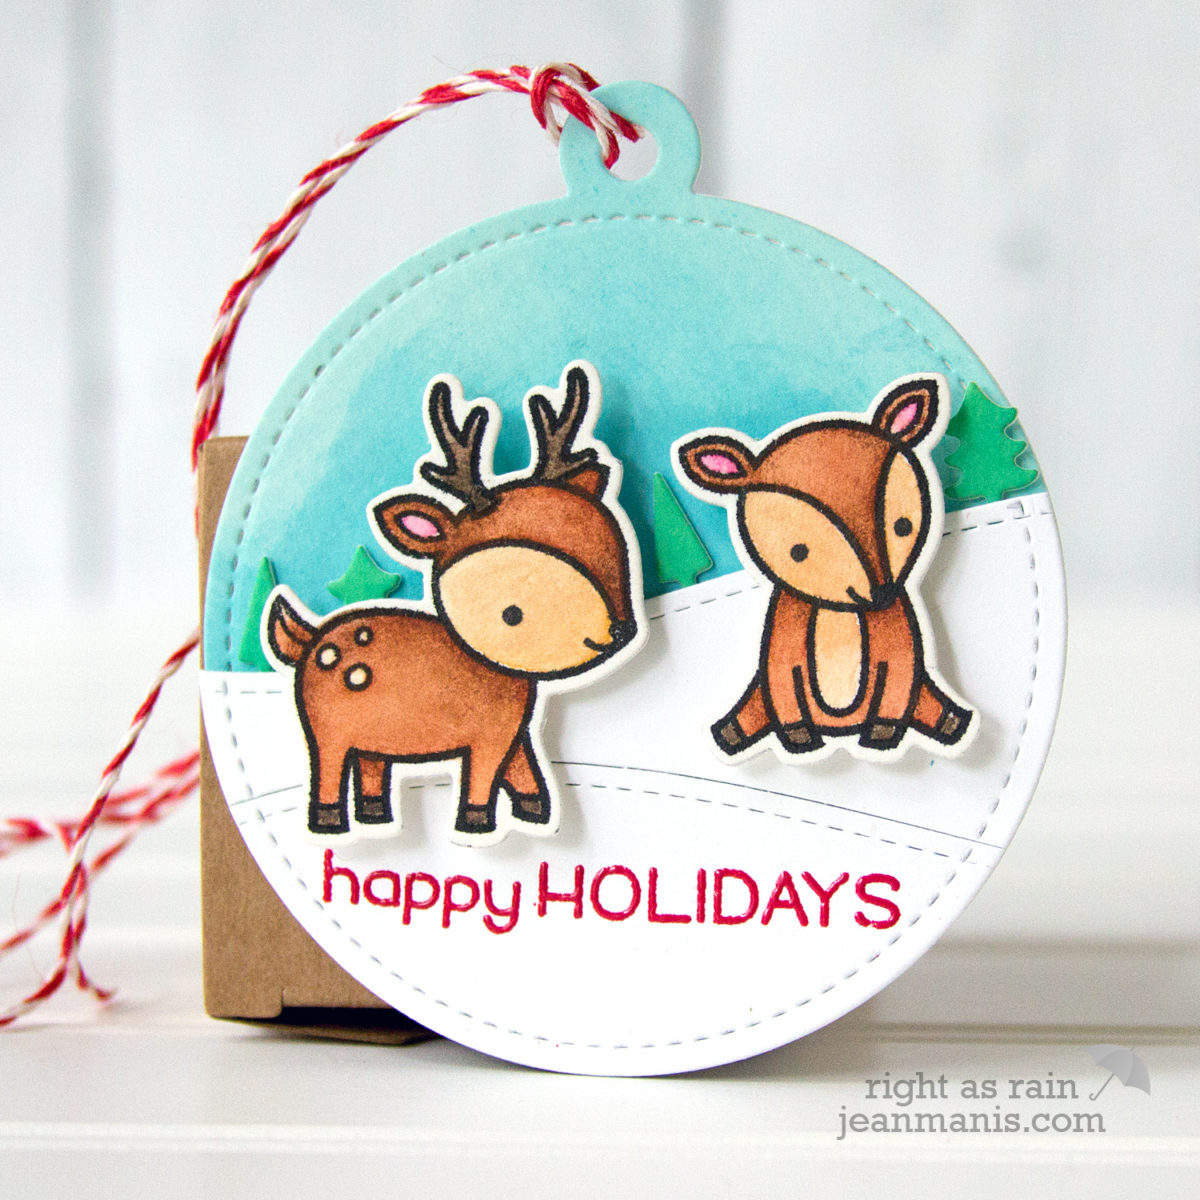 The 25 Days of Christmas Tags 2017 – Day 12 Lawn Fawn